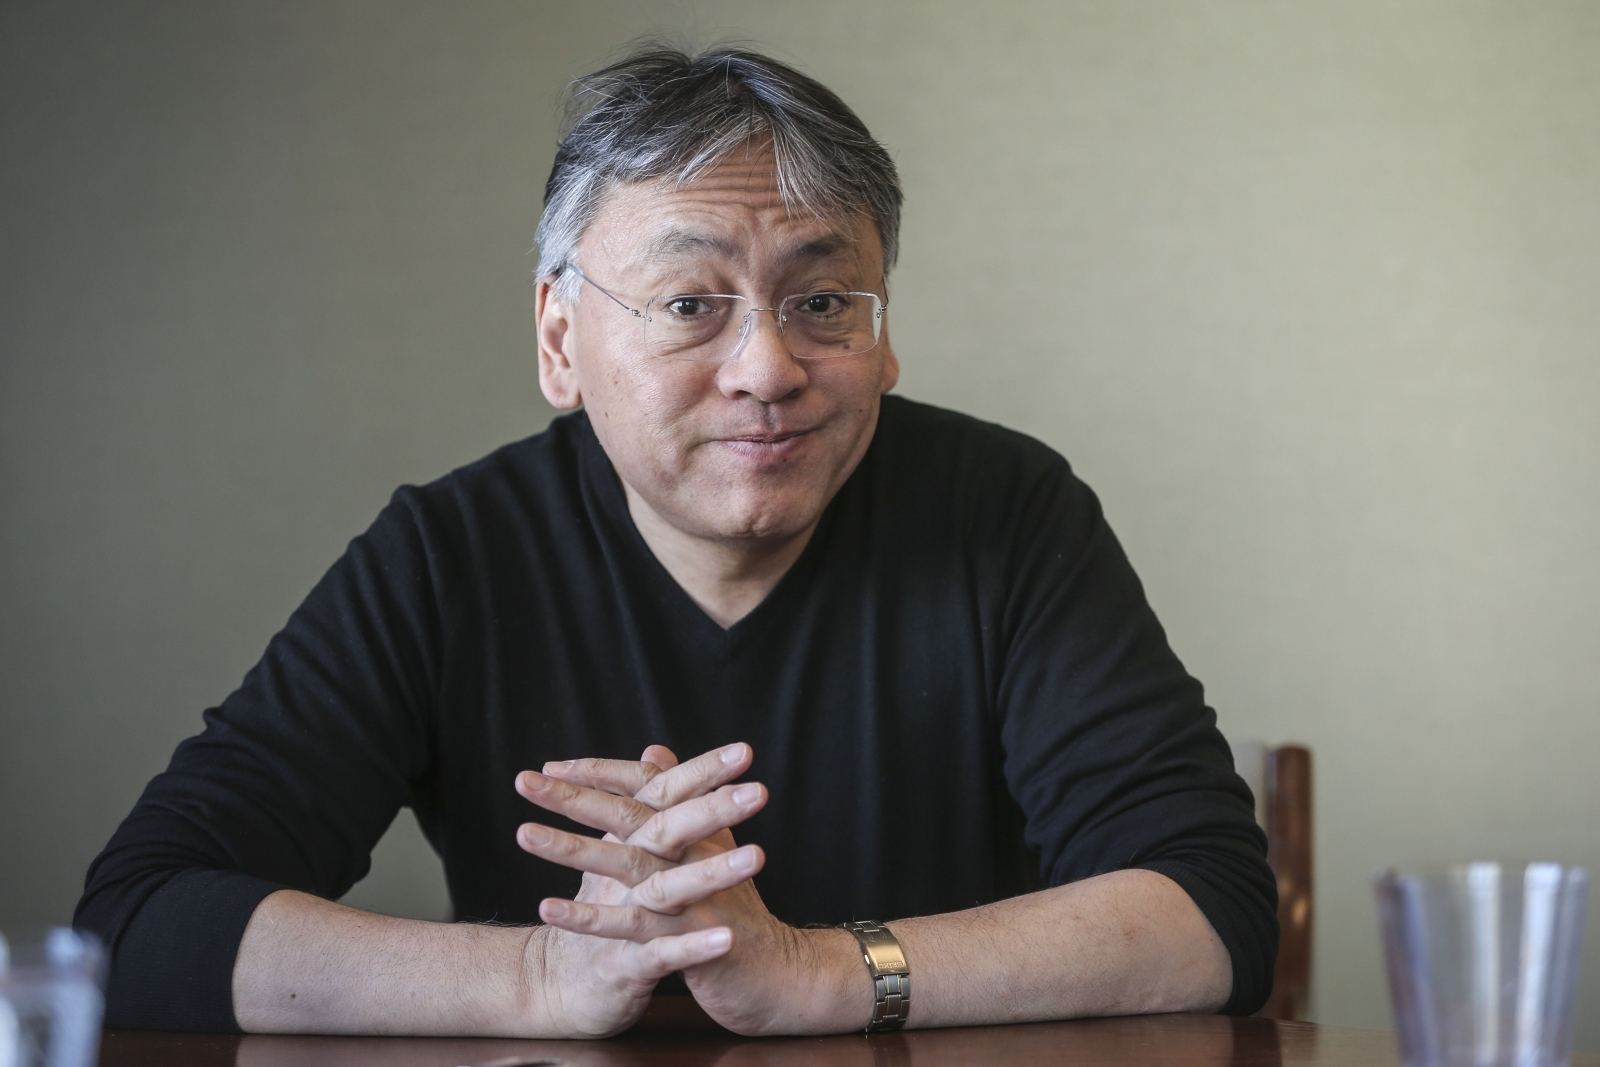 British novelist Kazuo Ishiguro has won the 2017 Nobel Prize for Literature